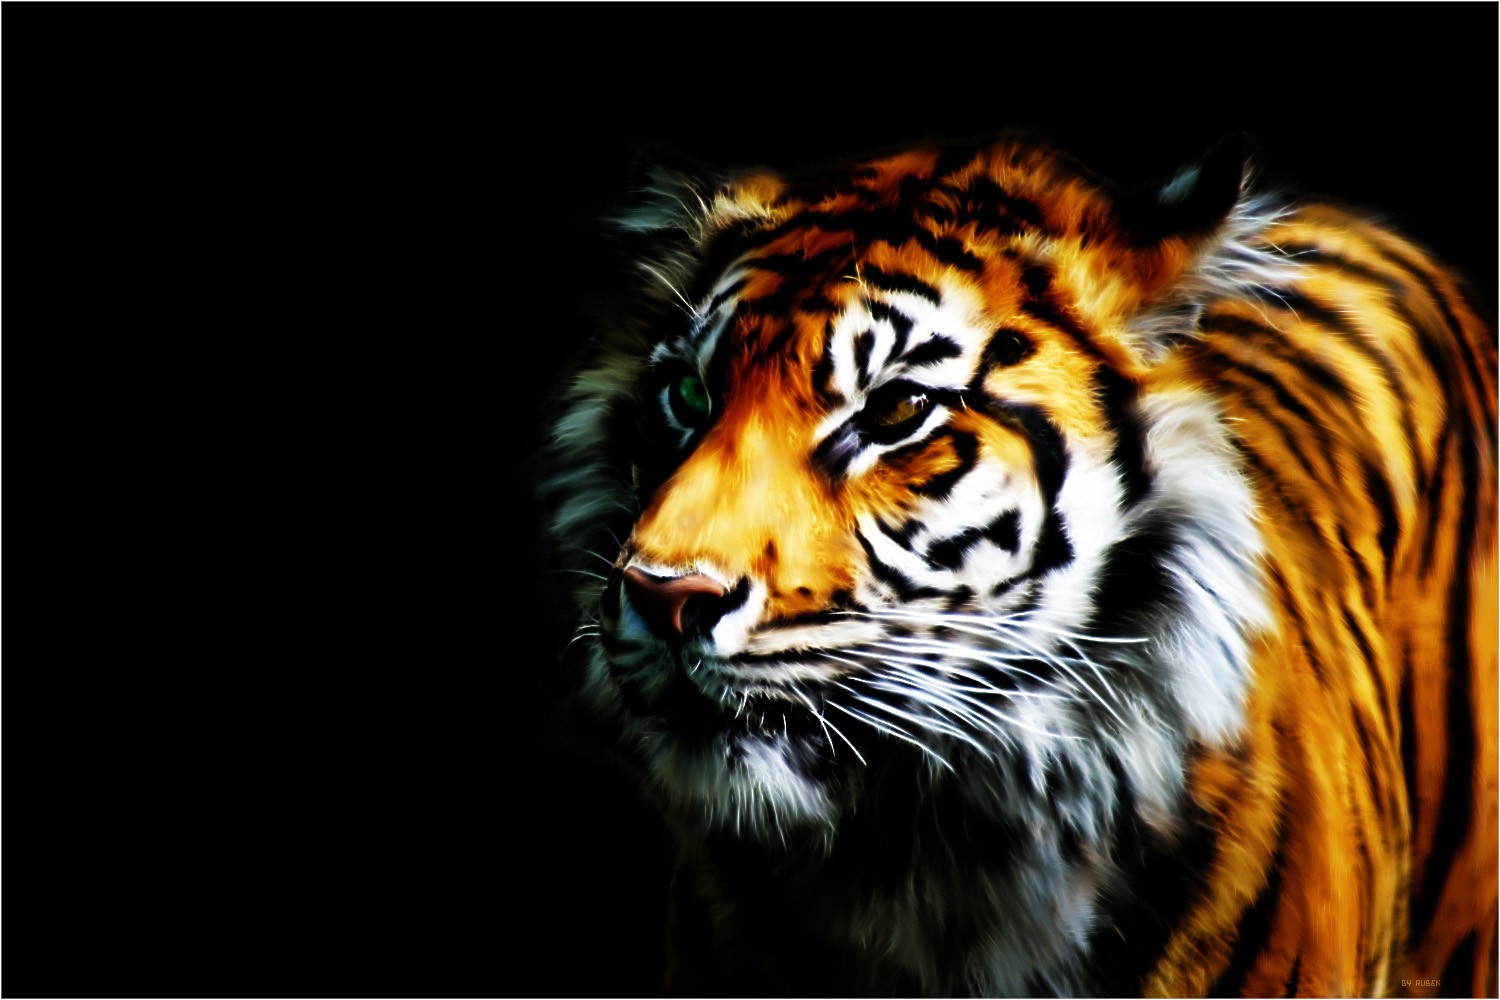 related pictures tiger dragon wallpaper download Car Pictures 1500x1000